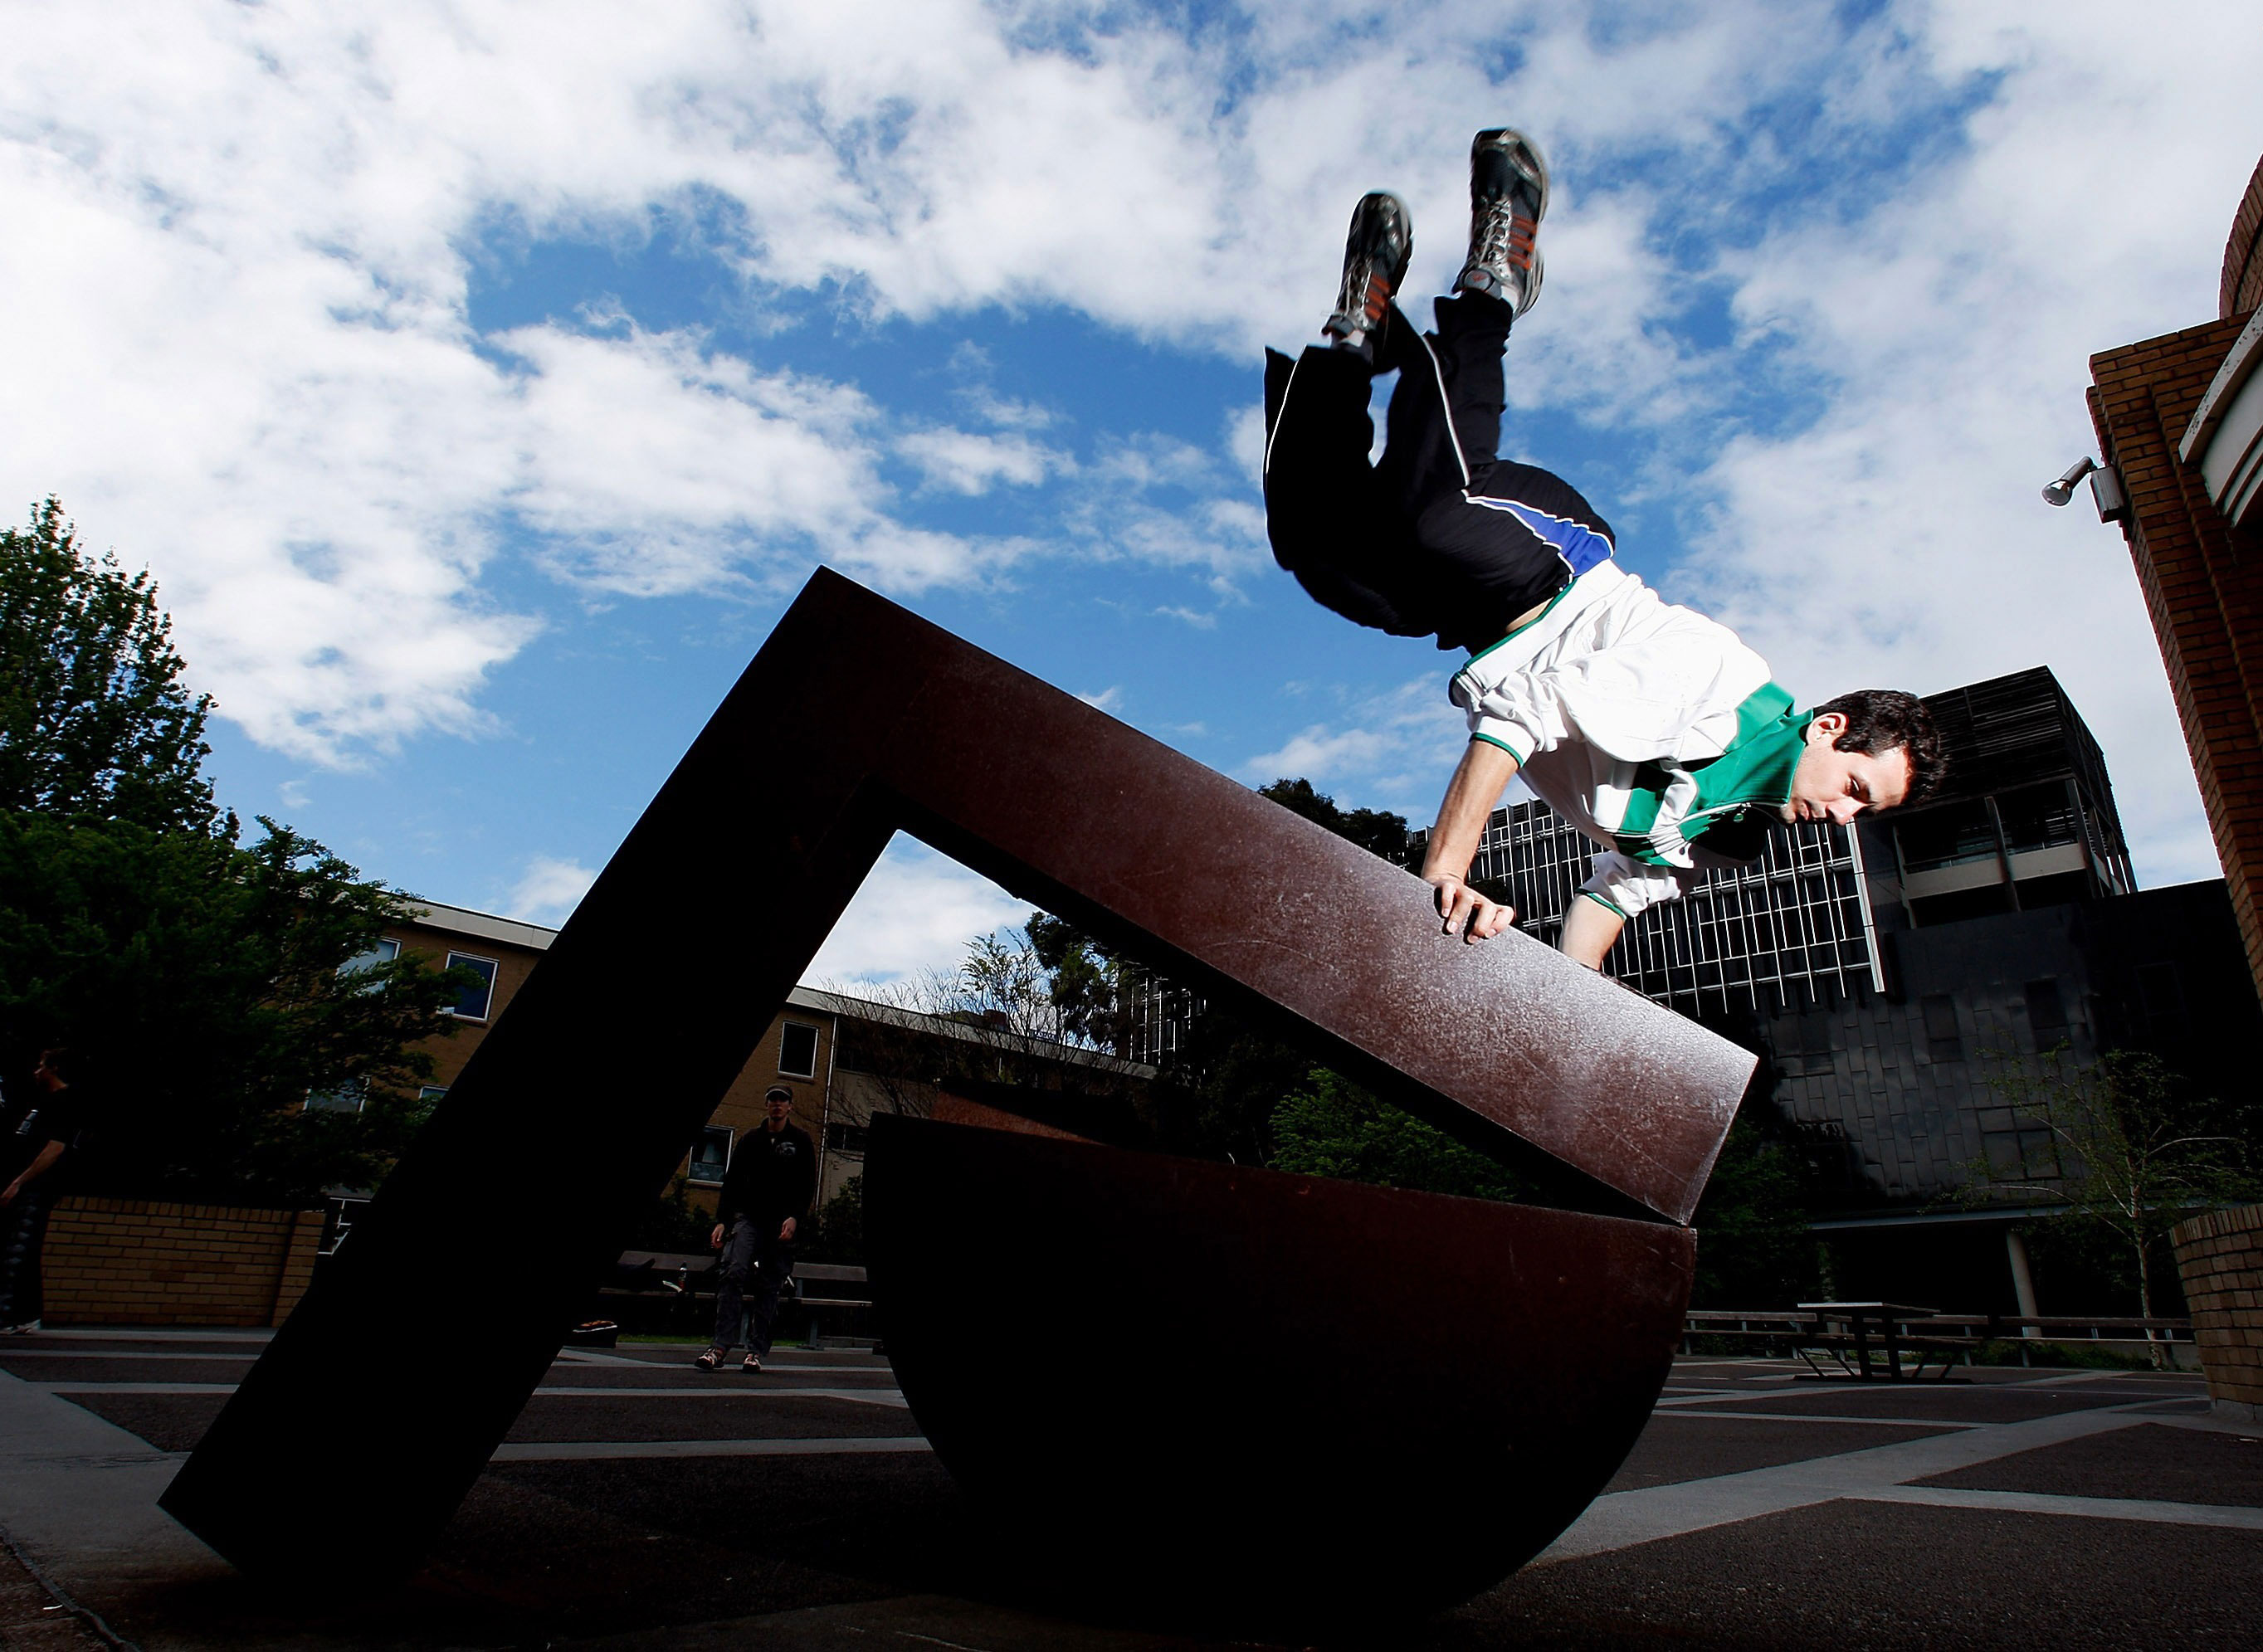 Parkour wallpapers extreme parkour wallpapers Wallpapereorg 2727x1991